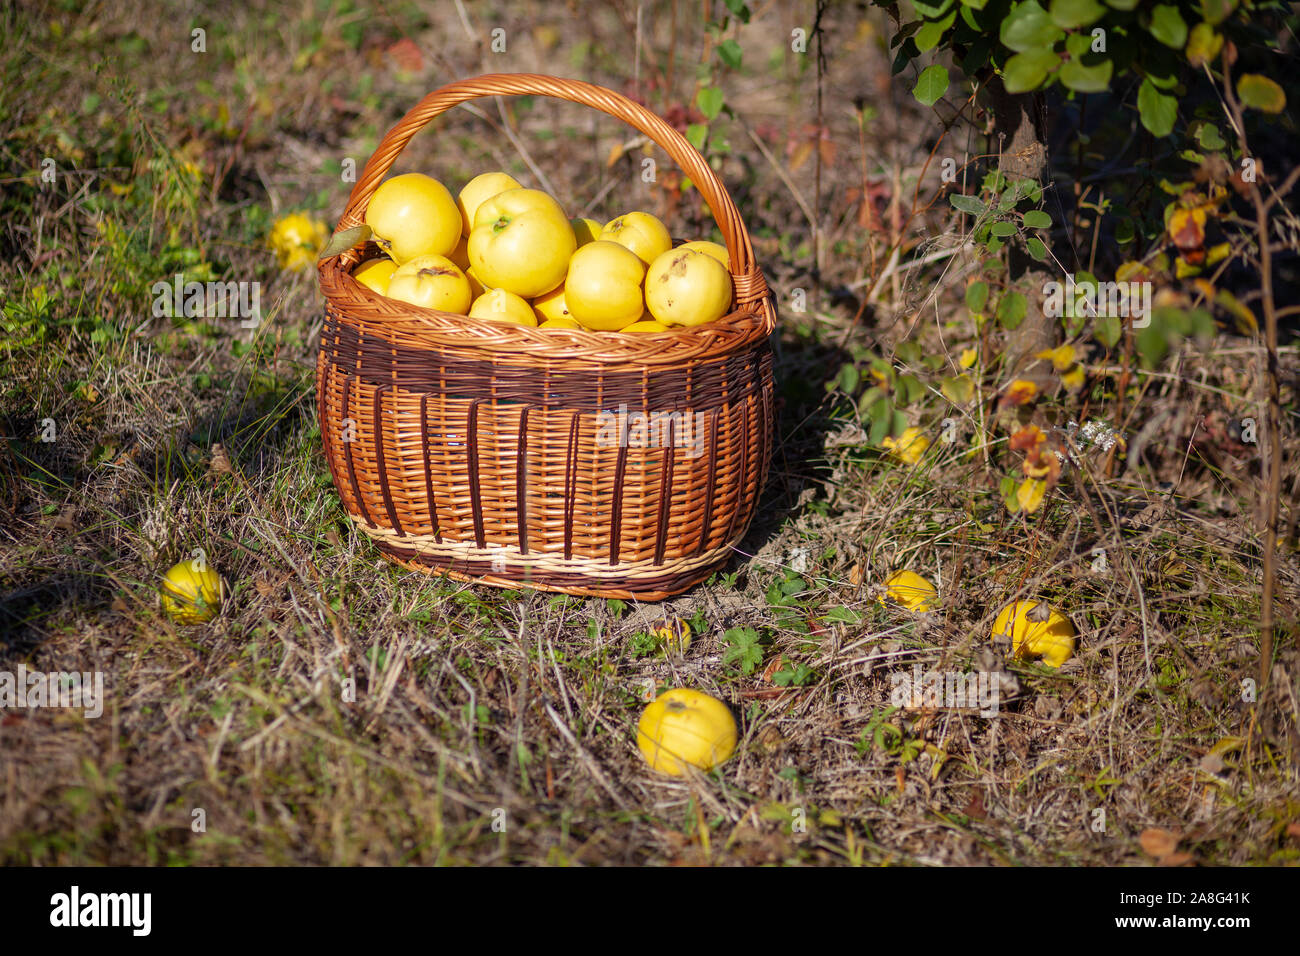 Still life autumn photo of freshly picked yellow quinces in a basket Stock Photo